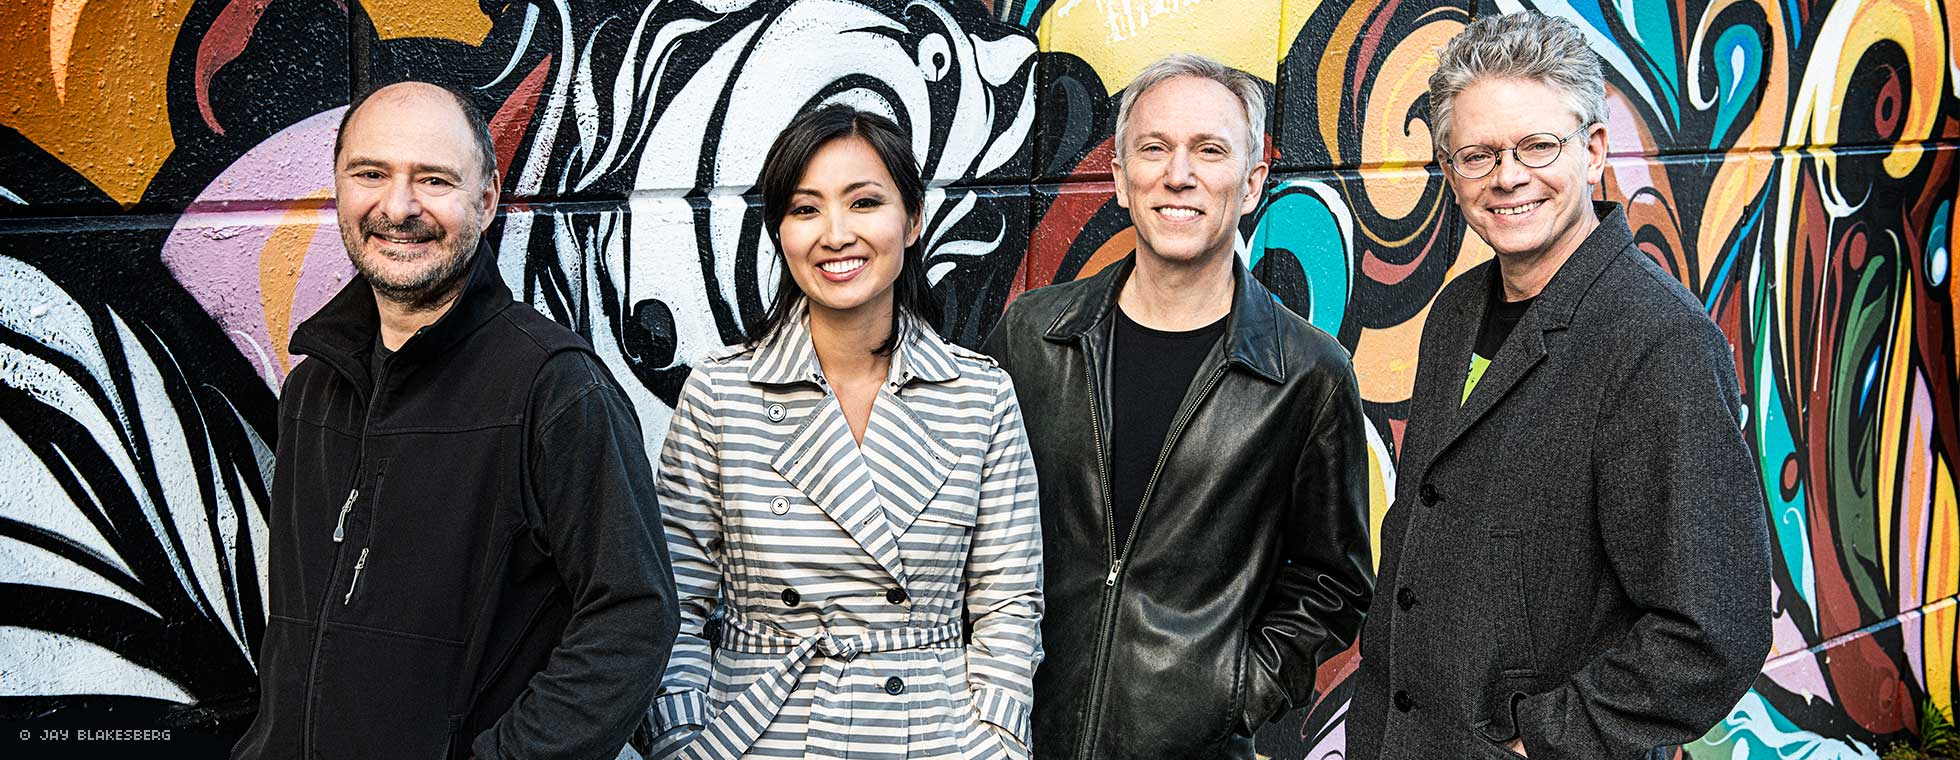 Quartet members stand in a row in front of a mural wall.